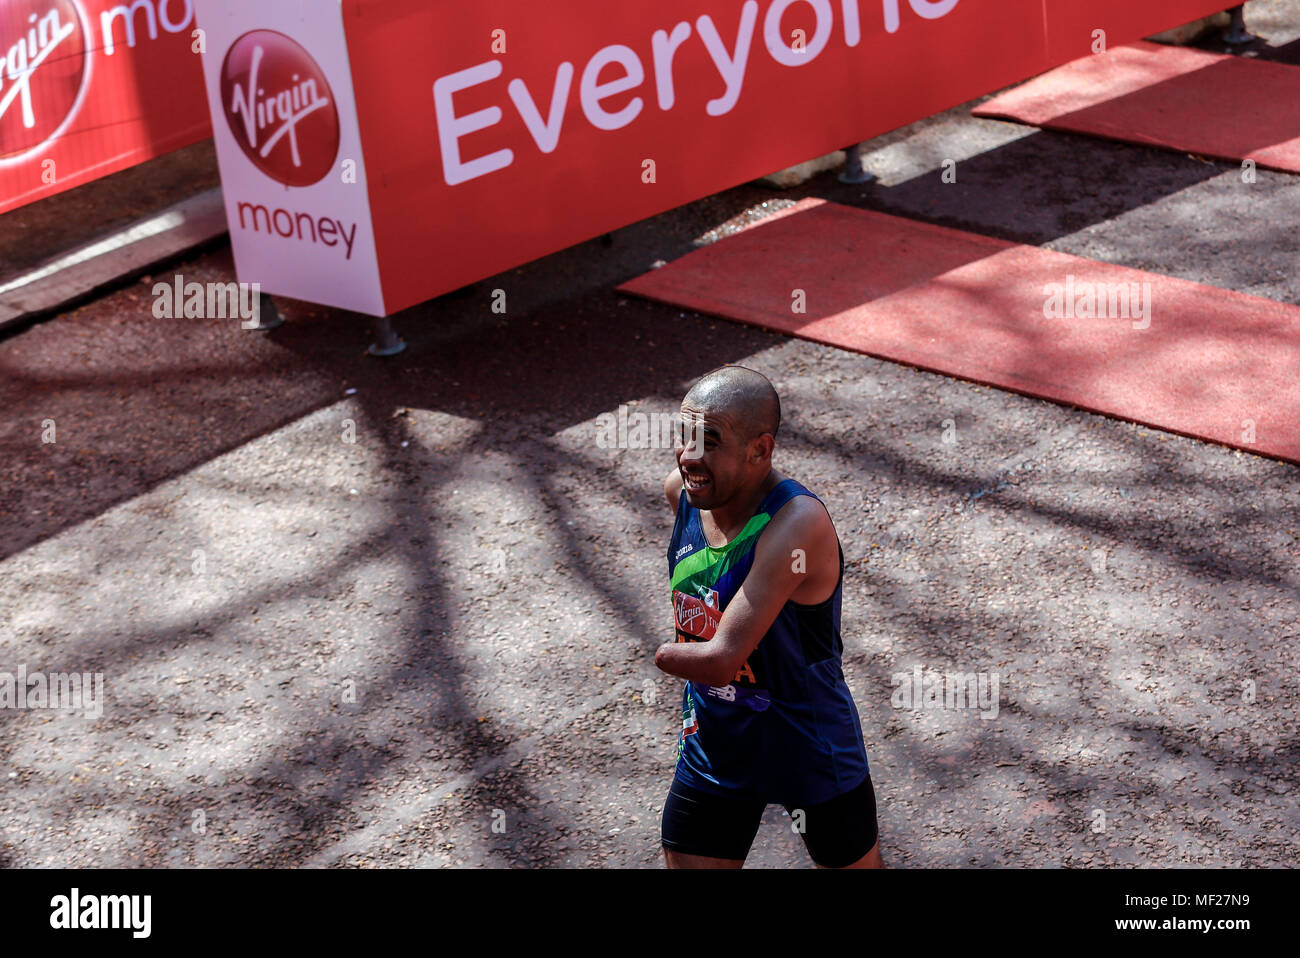 Pedro Meza at the finish line Para-athletics Marathon World Cup for men para-athletes with lower and upper limb impairments during the Virgin Money London Marathon in London, England on April 22, 2018. - Stock Image